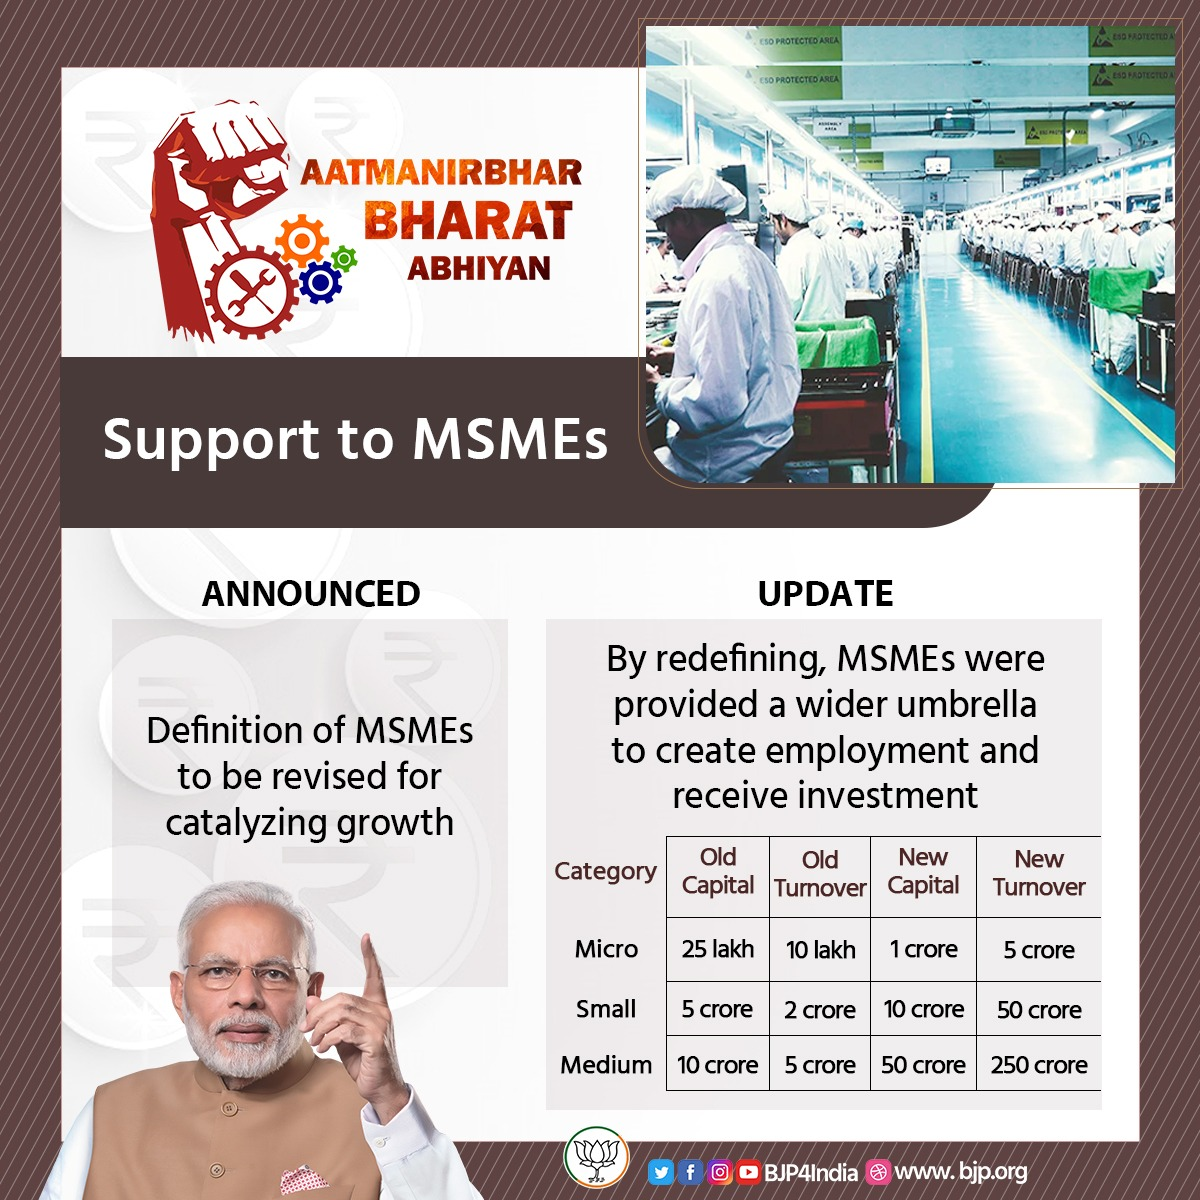 Support to MSMEs. By redefining, MSMEs were provided a wider umbrella to create employment and receive investment. #AatmanirbharBharat